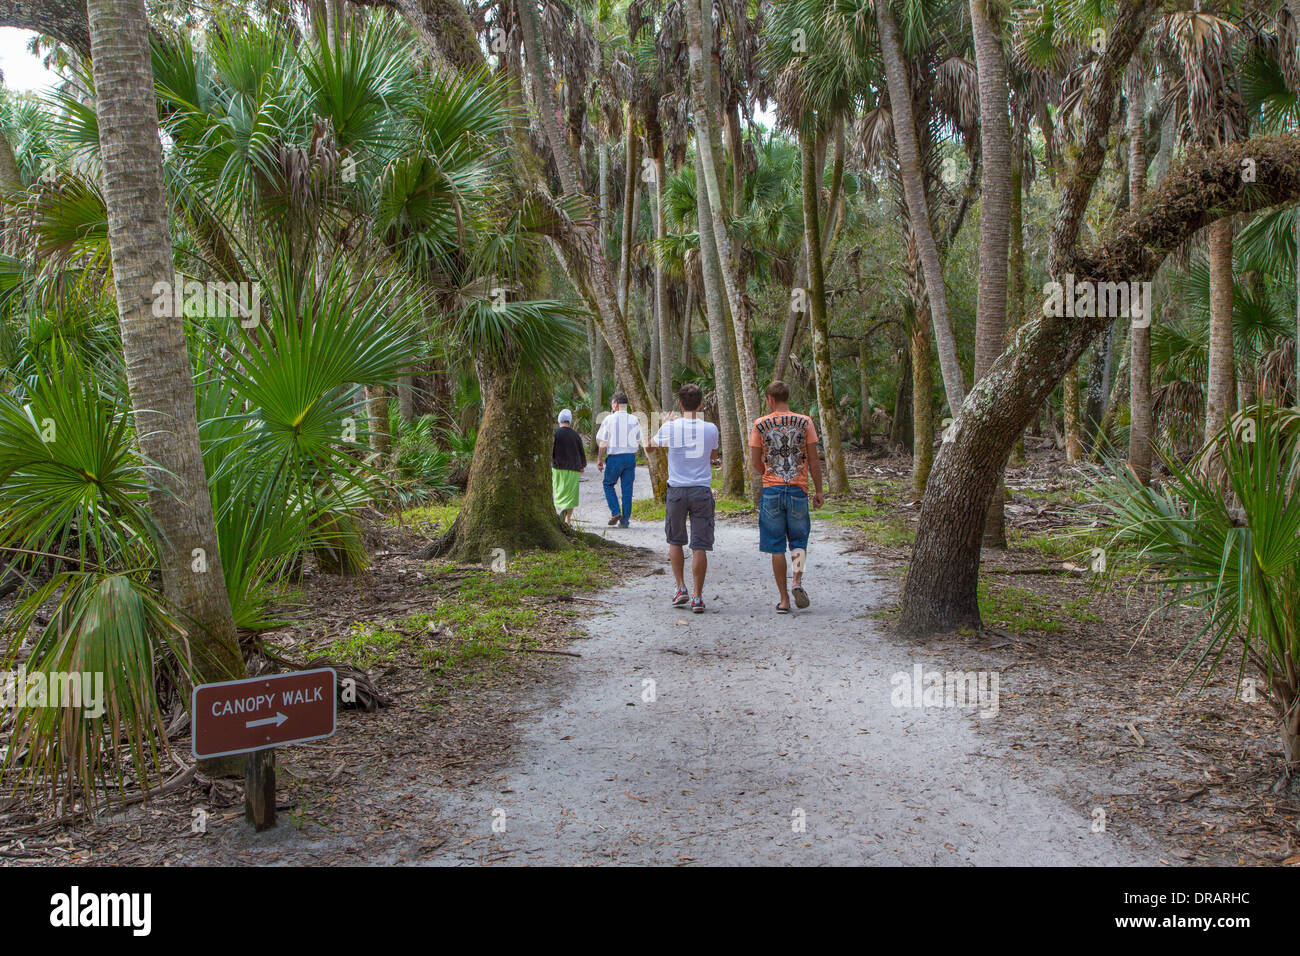 People walking on William S Boylston nature trail leading to Canopy walk in Myakka River State Park Sarasota Florida Stock Photo